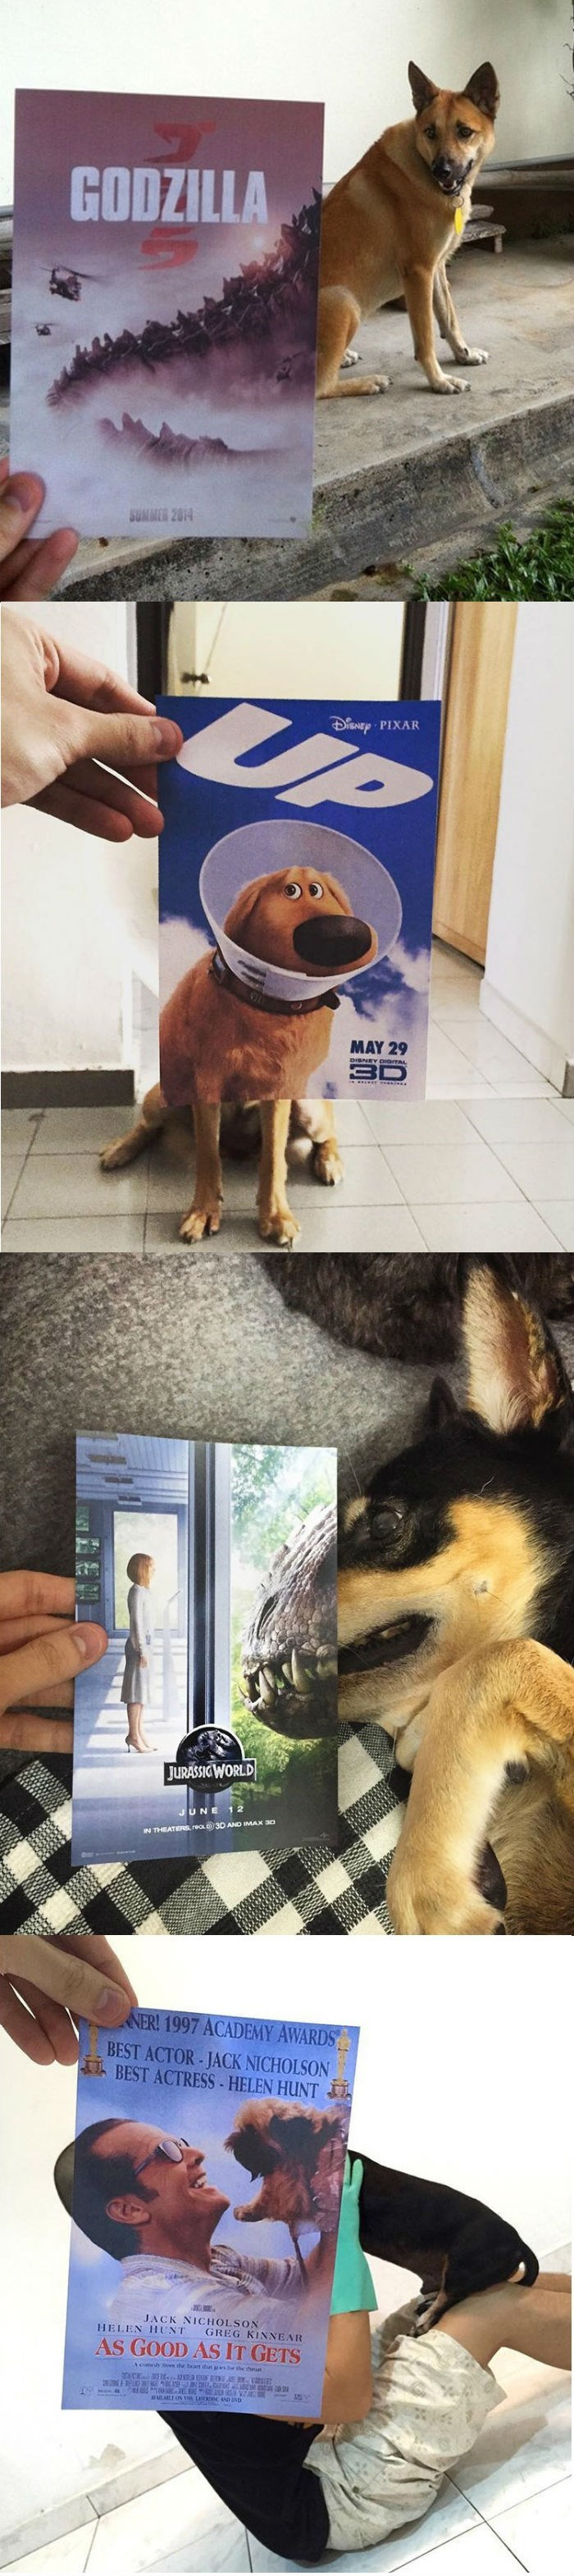 funny animal images of dogs with movie posters held over them